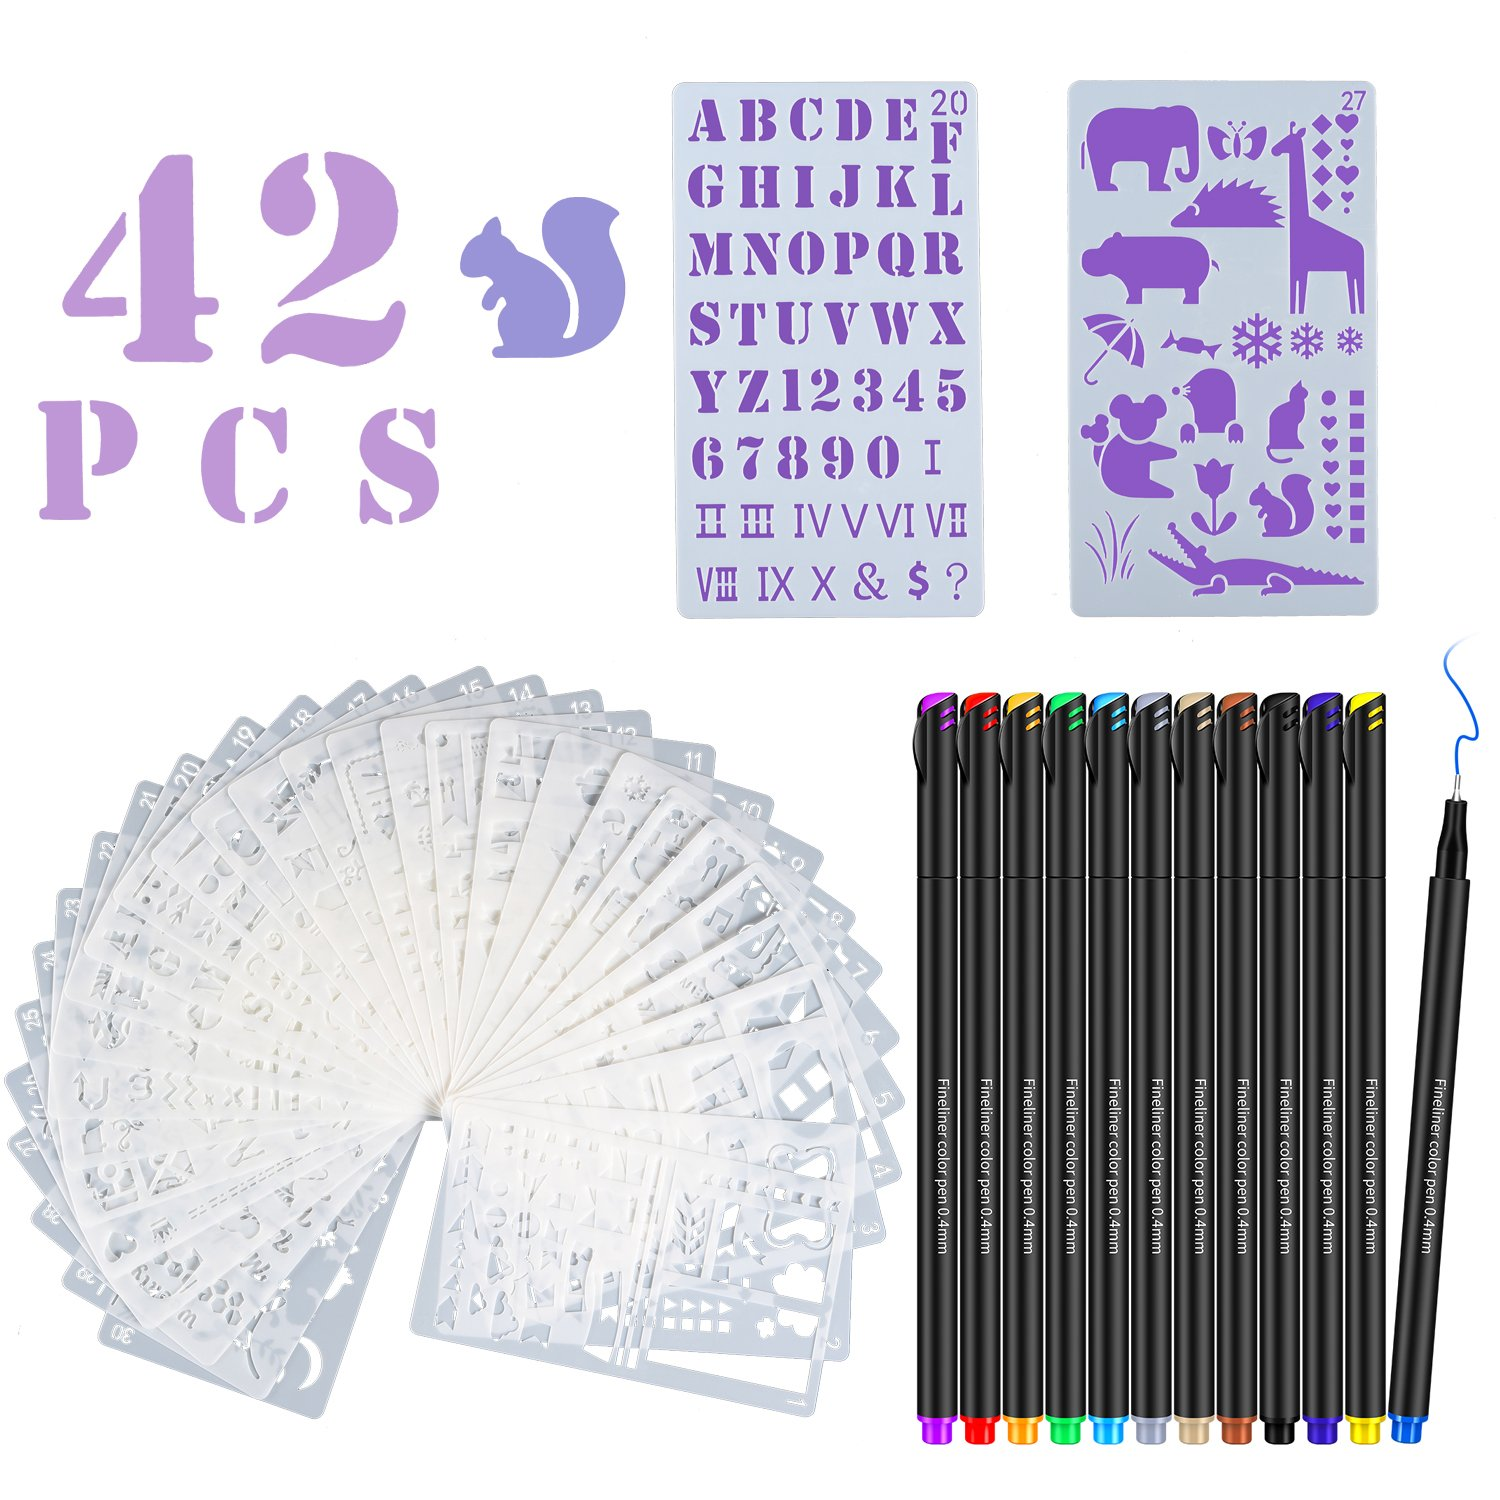 TEOYALL 30 PCS Bullet Journal Planner Stencils Drawing Templates Set + 12 Color Fineliner Pens Scrapbook Supplies